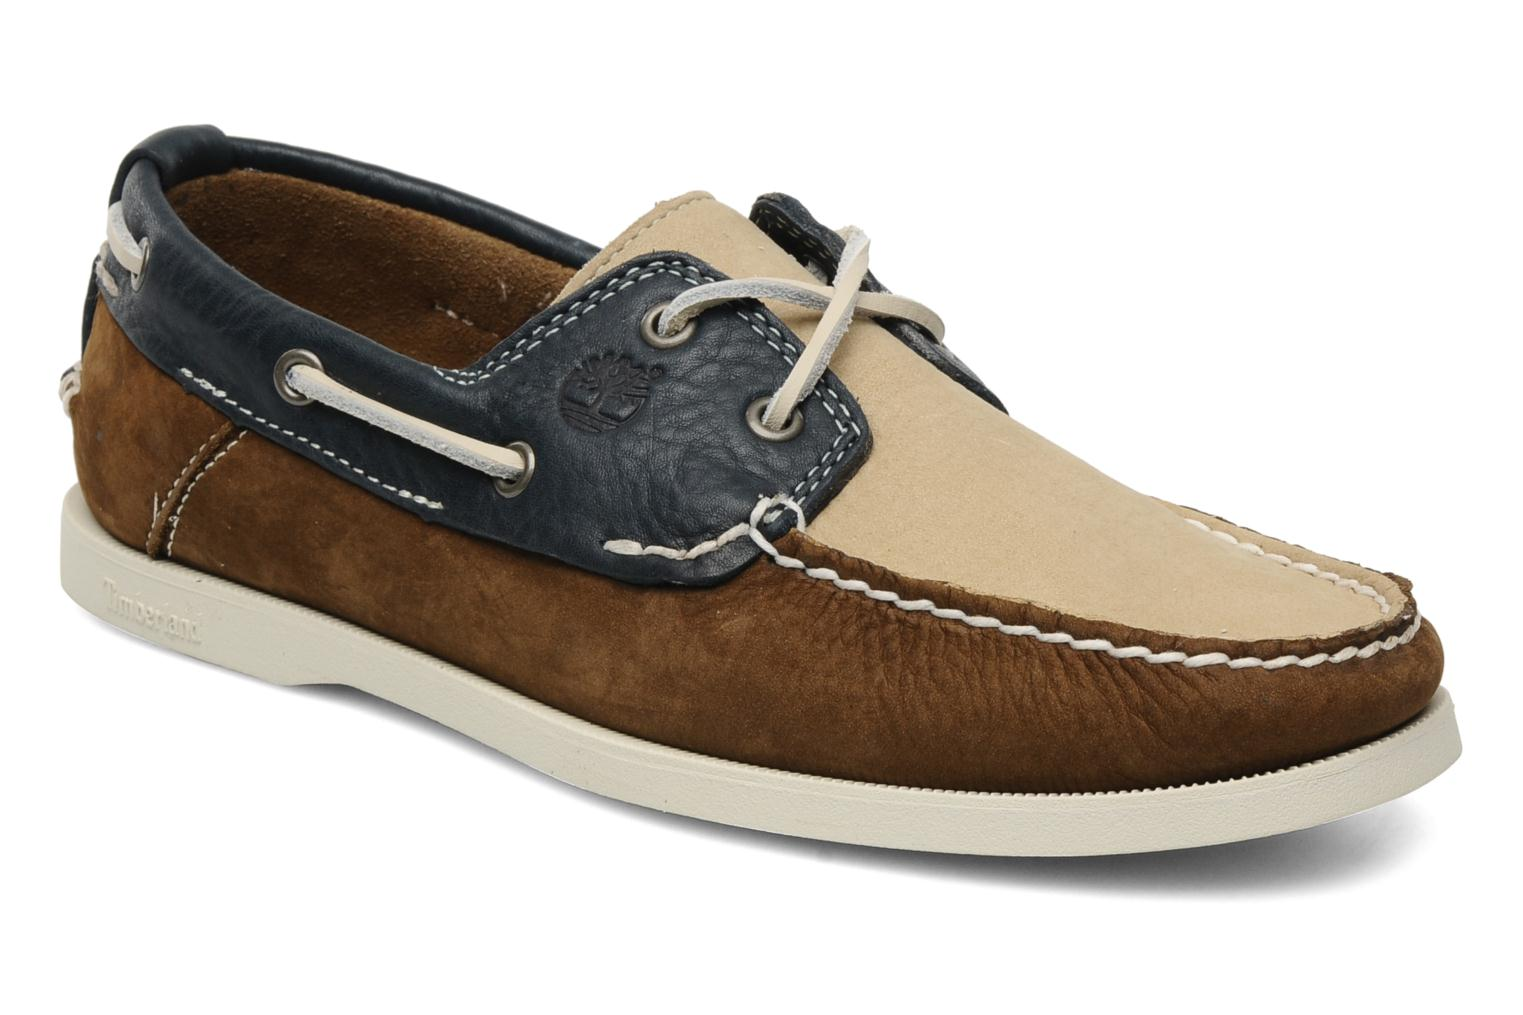 Timberland > Boat Shoes; Boat Shoes. 6 Item(s) Show. View as: Grid List Sort By Men's Timberland® 3-Eye Classic Lug Shoes Brown. Special Price: $ Regular Price: $ Men's Timberland® 3-Eye Classic Lug Shoes Wine. Special Price: $